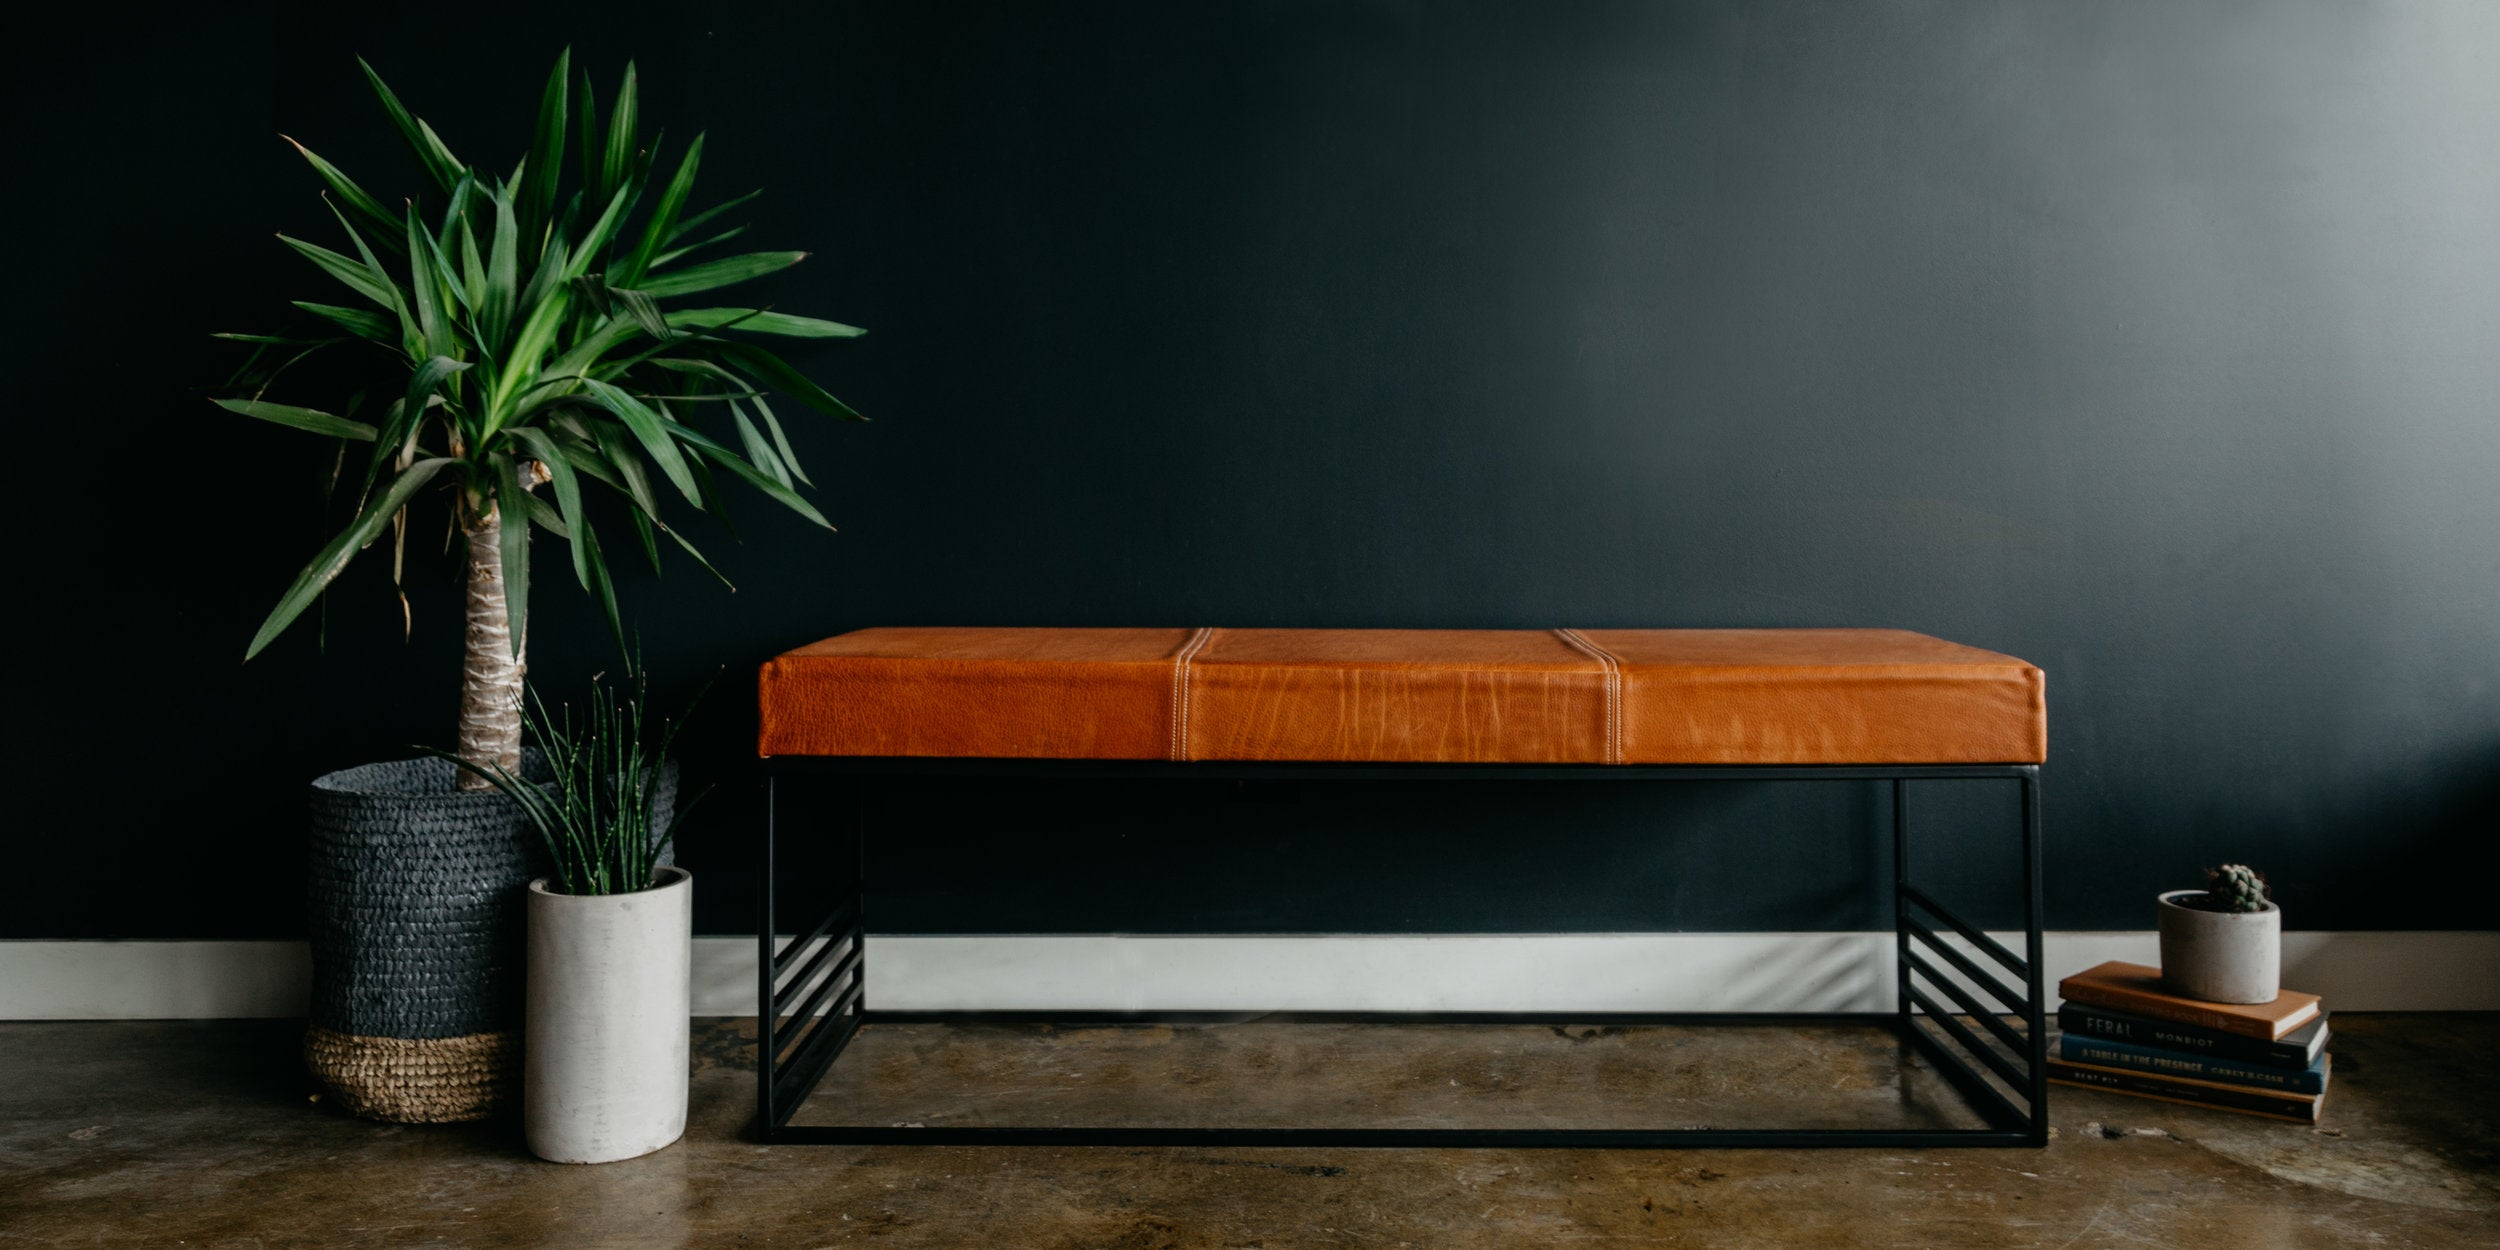 A Custom Leather Bench for KT in Collaboration With Lockeland Leatherworks